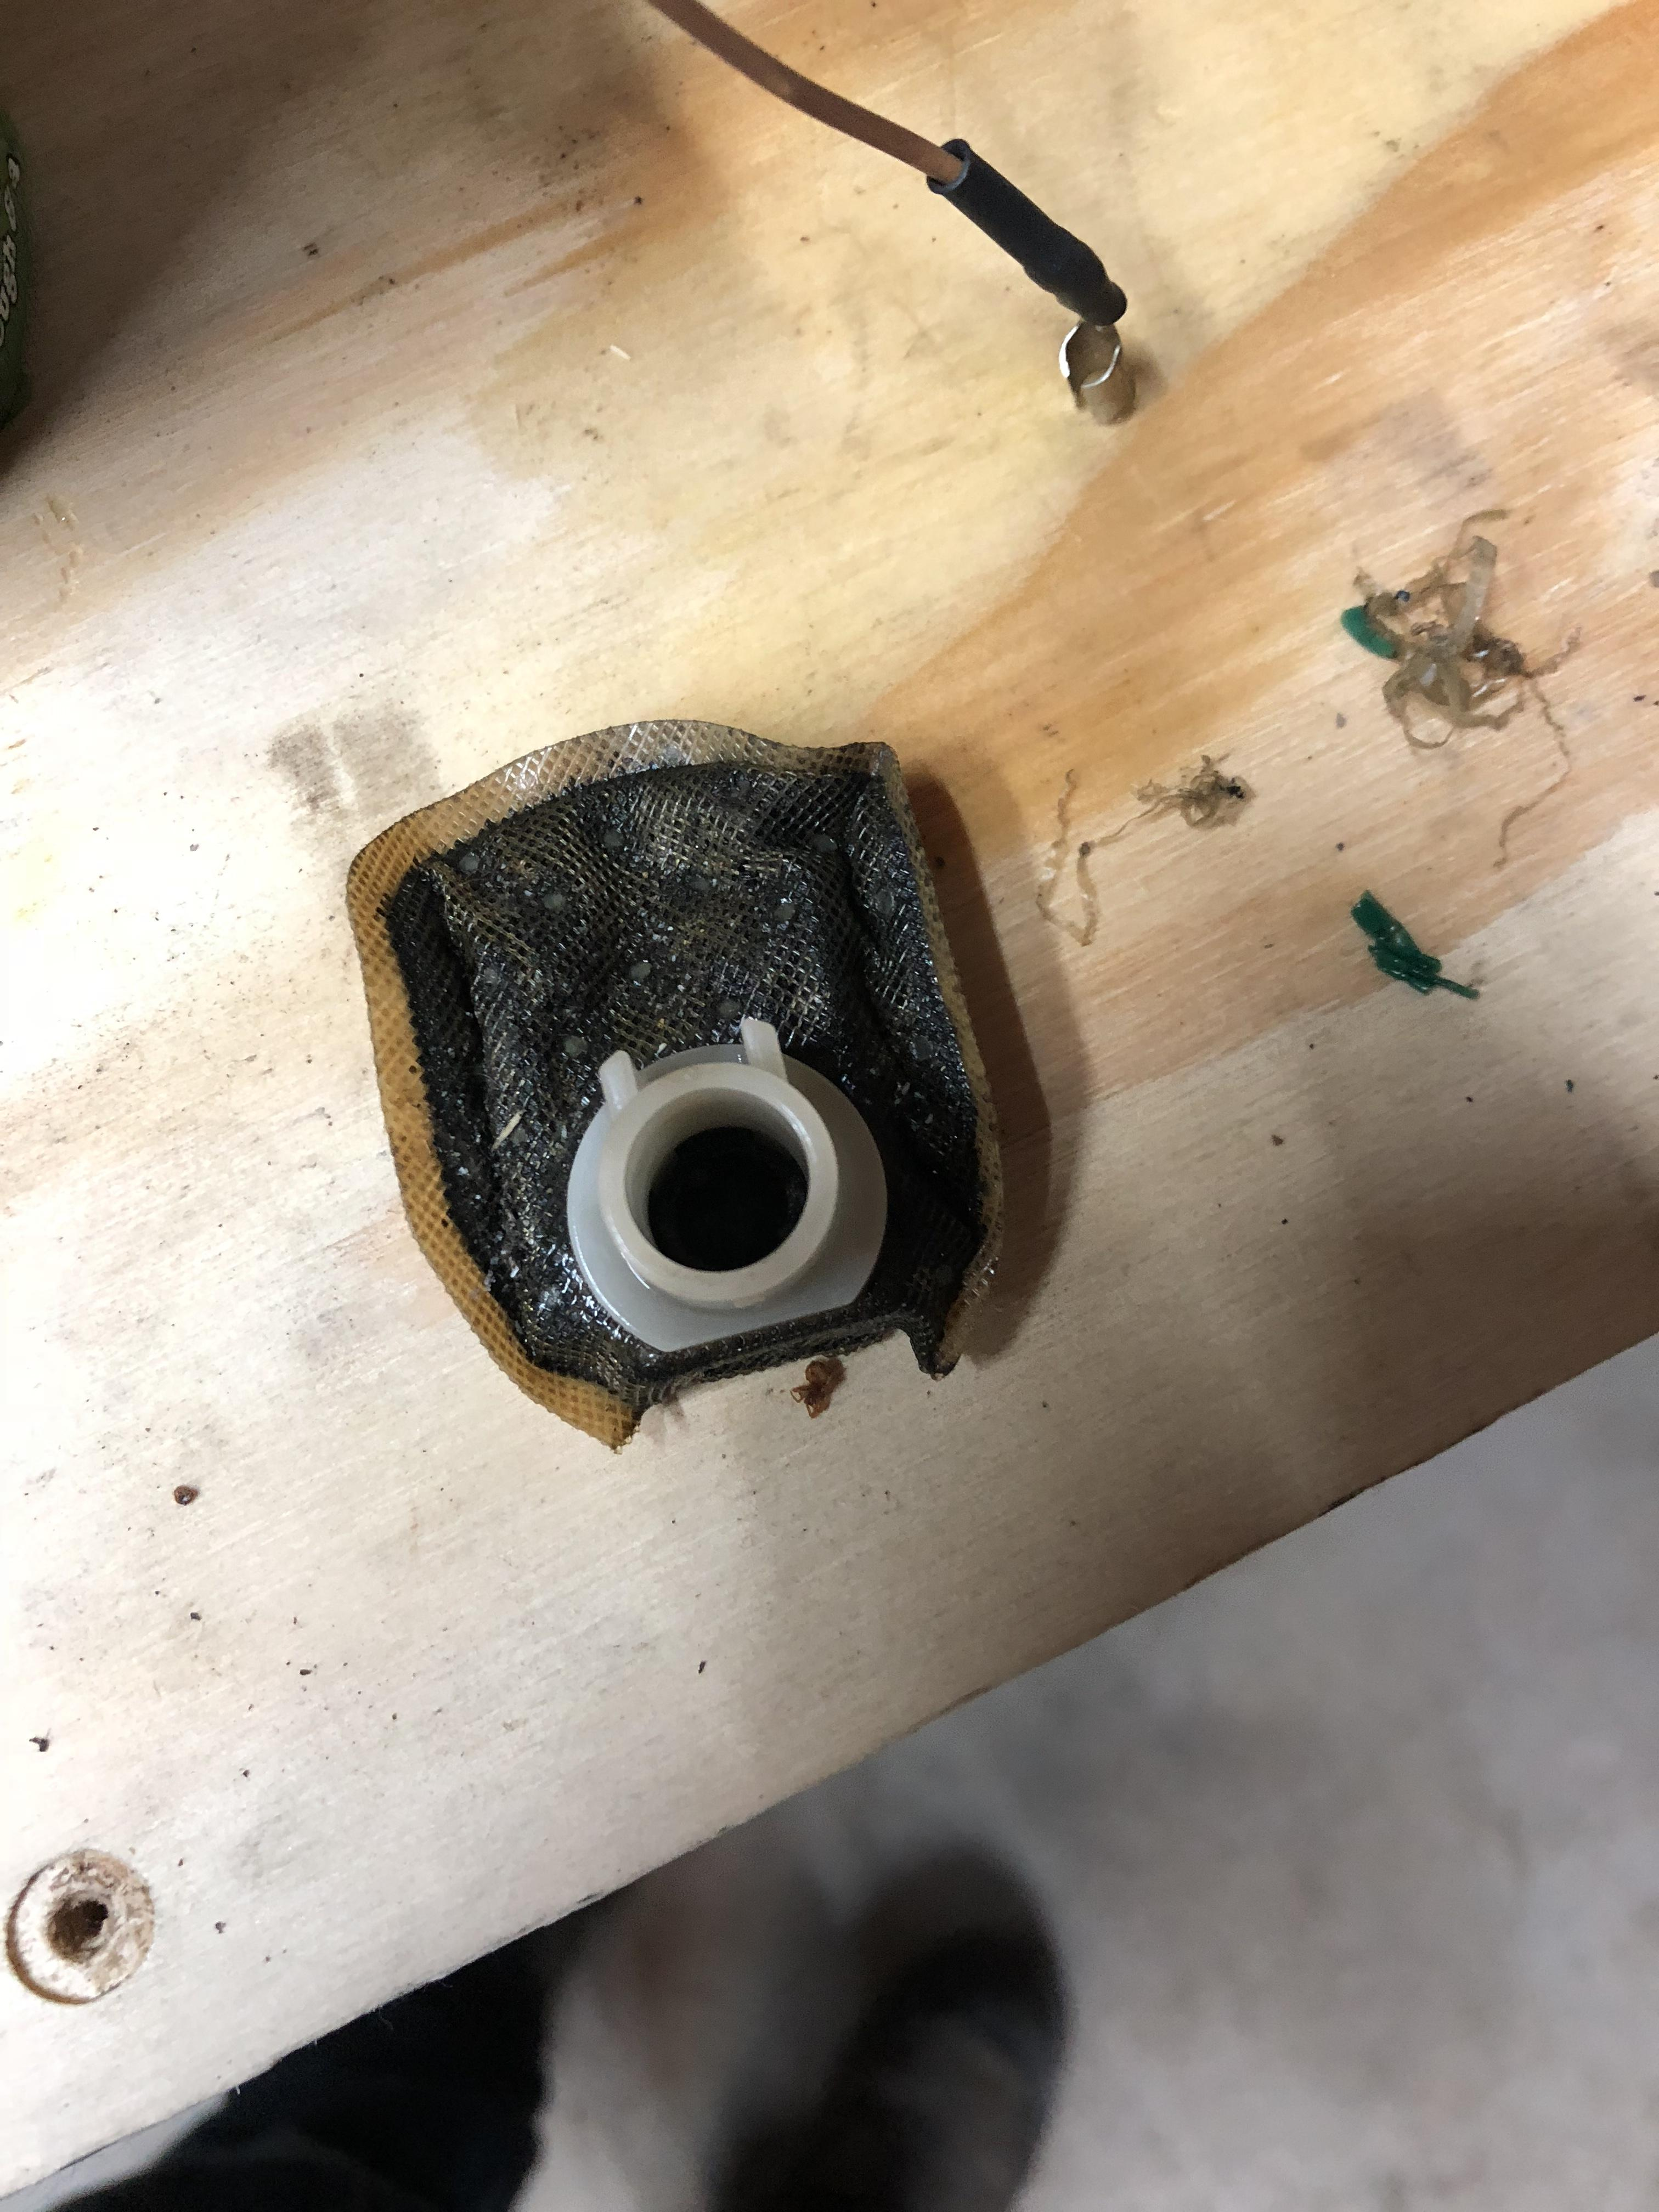 Zx14 Stutter Problem Zx Forums Fuel Filter Click Image For Larger Version Name Bdb63722 10d5 4c66 A715 27ce79790986 1537684521198